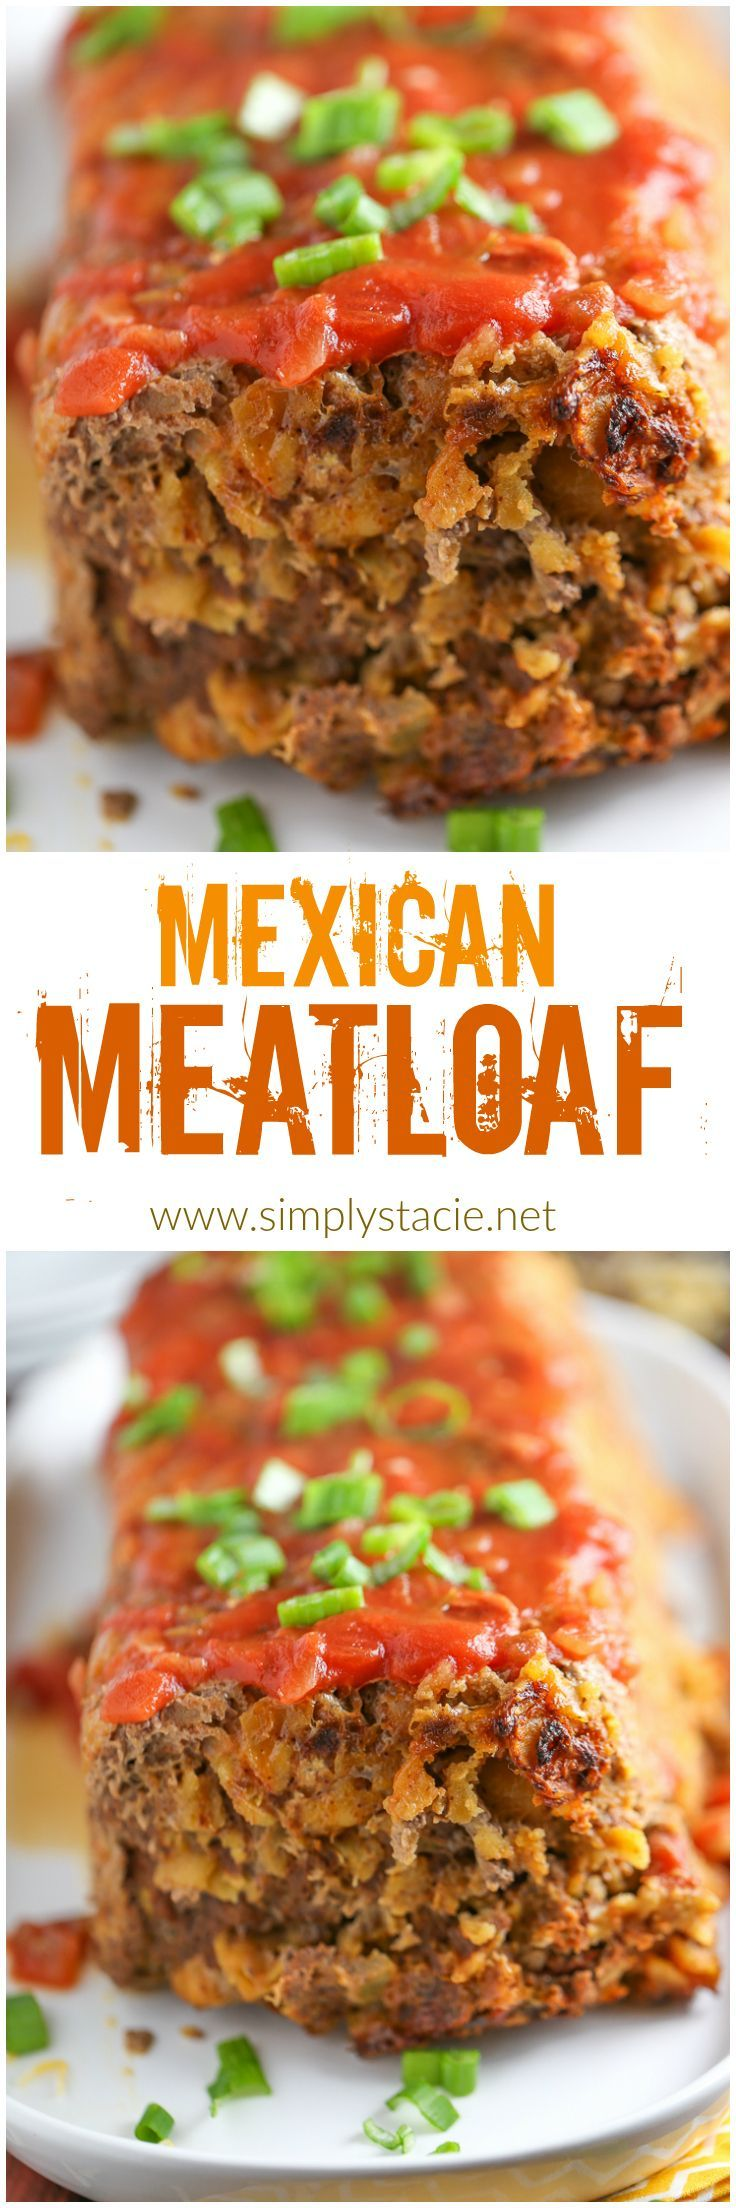 Mexican Meatloaf - A spicy twist on a classic recipe! This Mexican Meatloaf is…